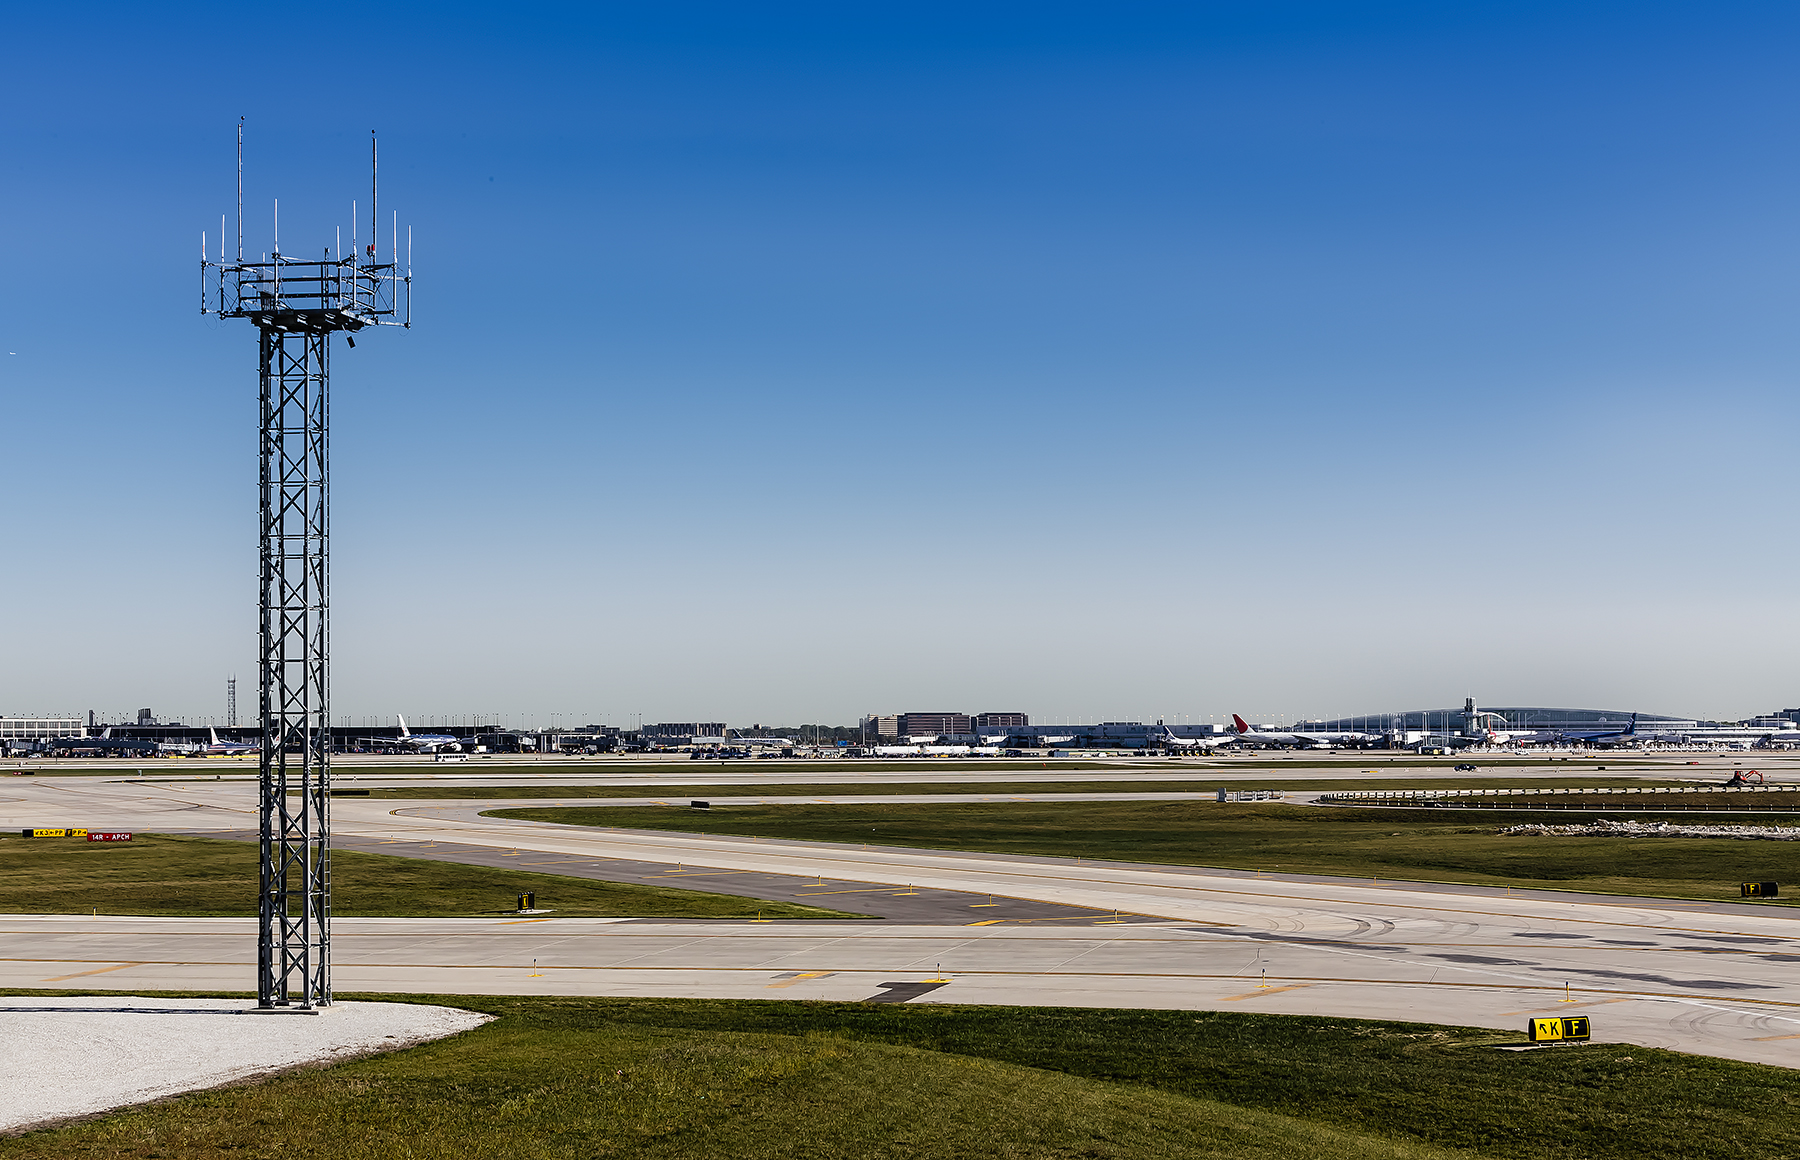 04-OHare-Taxiway-ZS-Chicago-Illinois-Ele